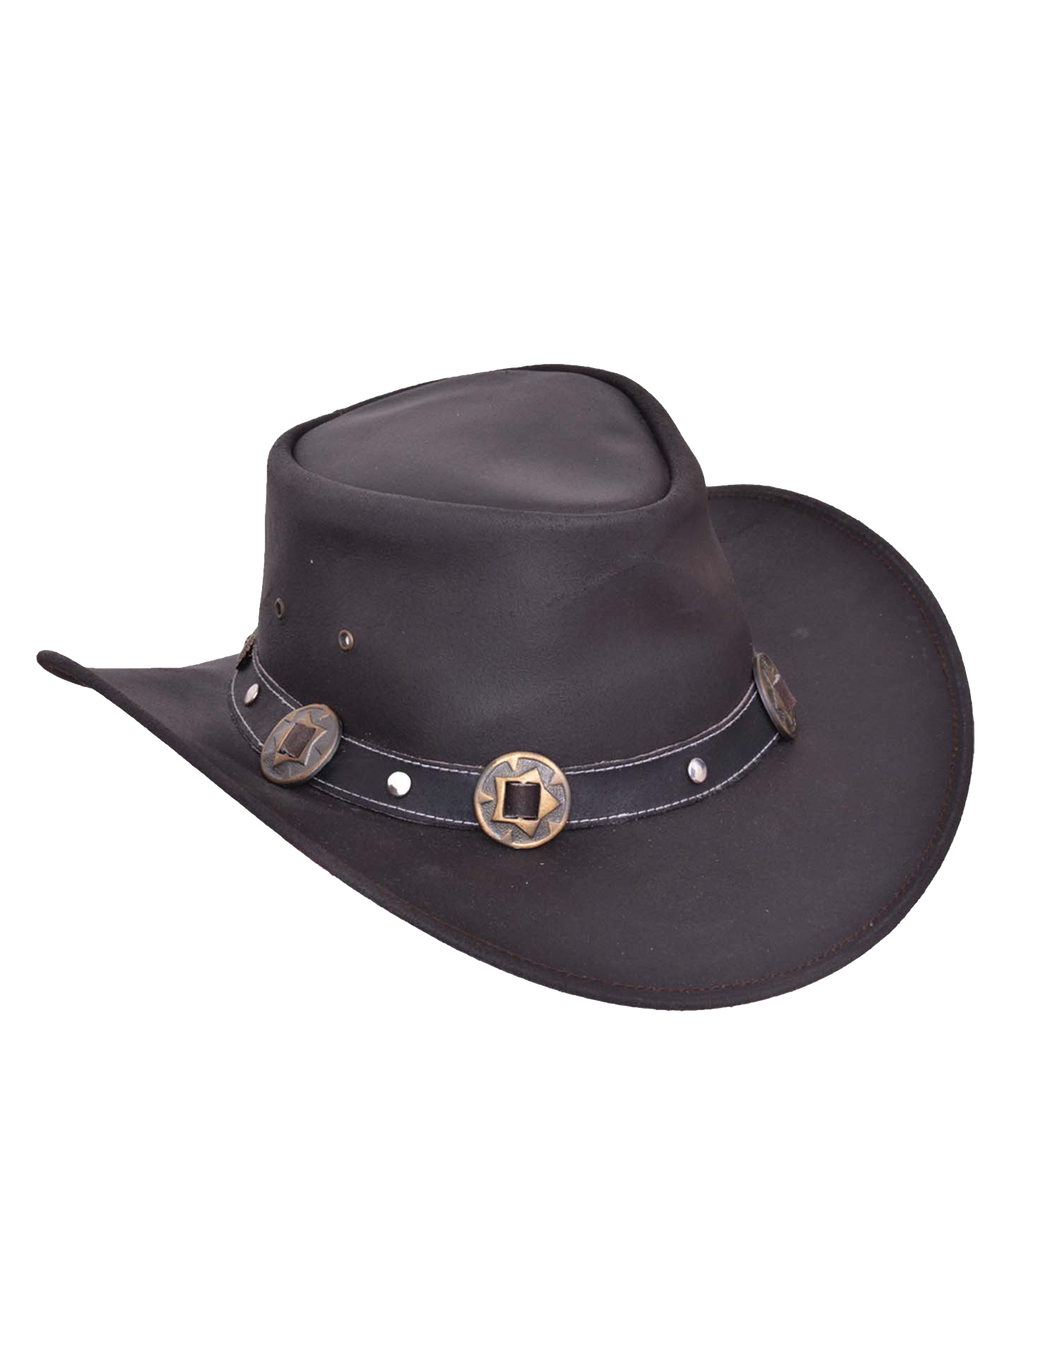 UNIK Leather Outback Hats - Ghost Rider Leather